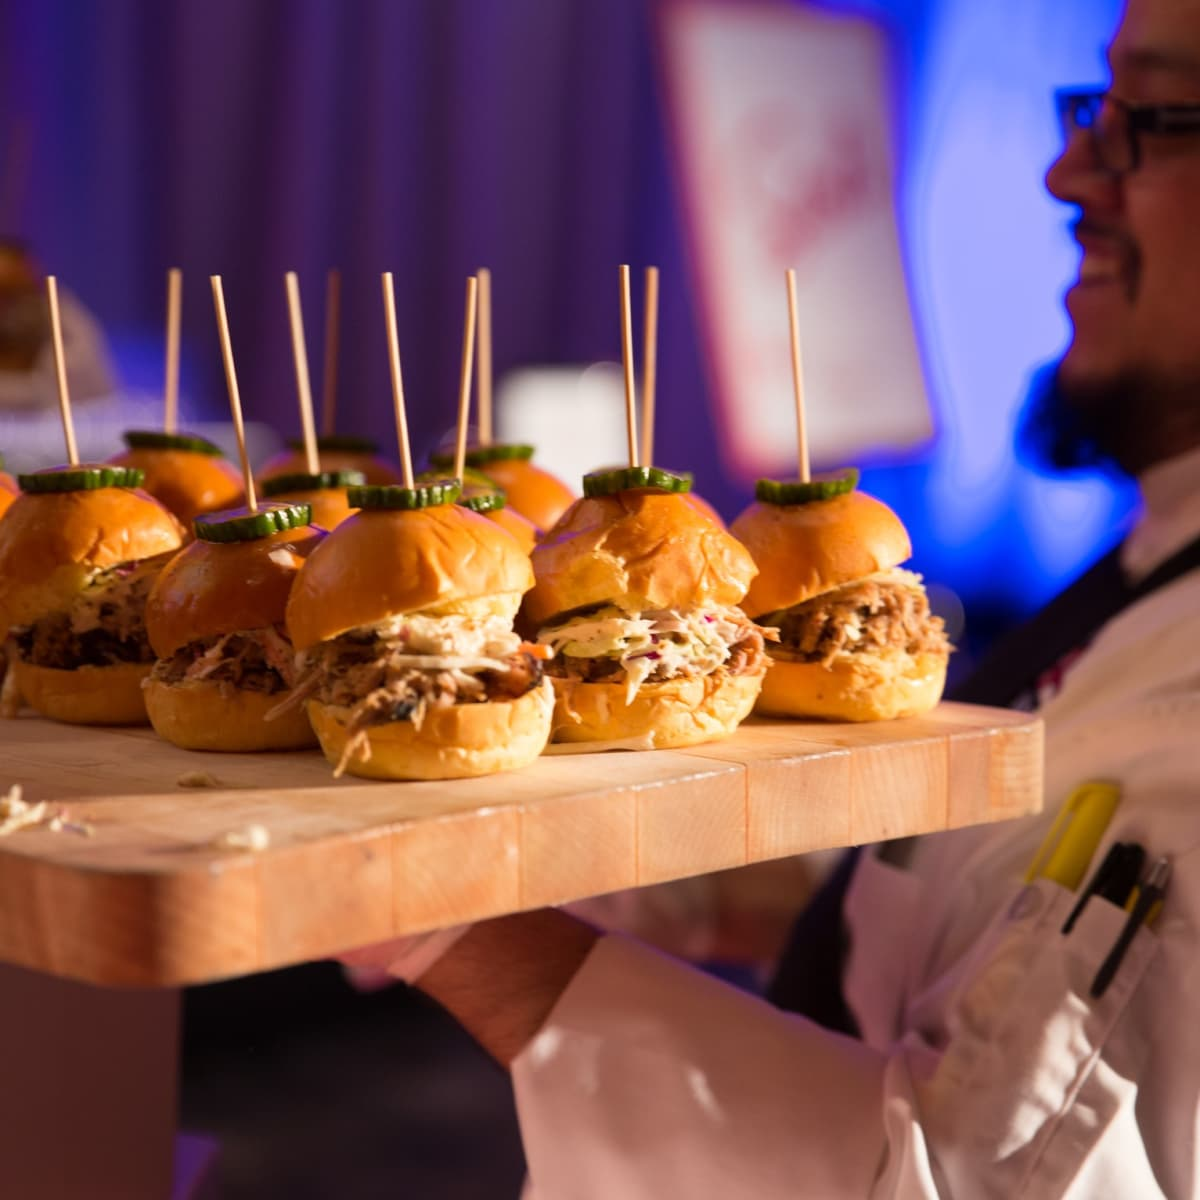 Bonne Sante 2018, Chef Mike Barraza, Pulled pork sliders, House of Blues